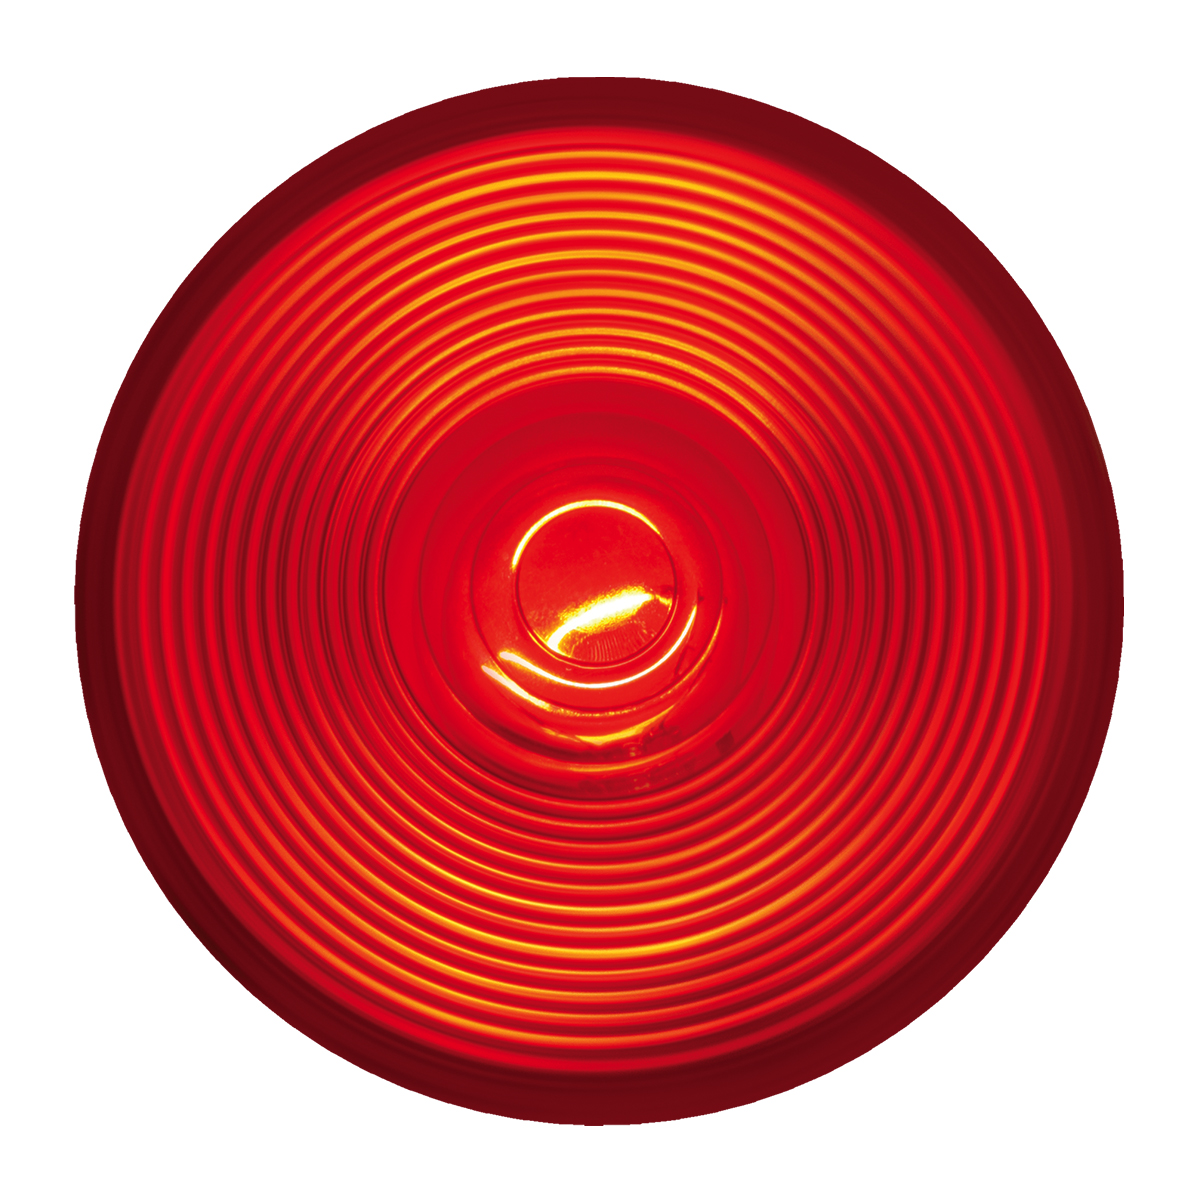 #80471 Incandescent Flat - Red/Red